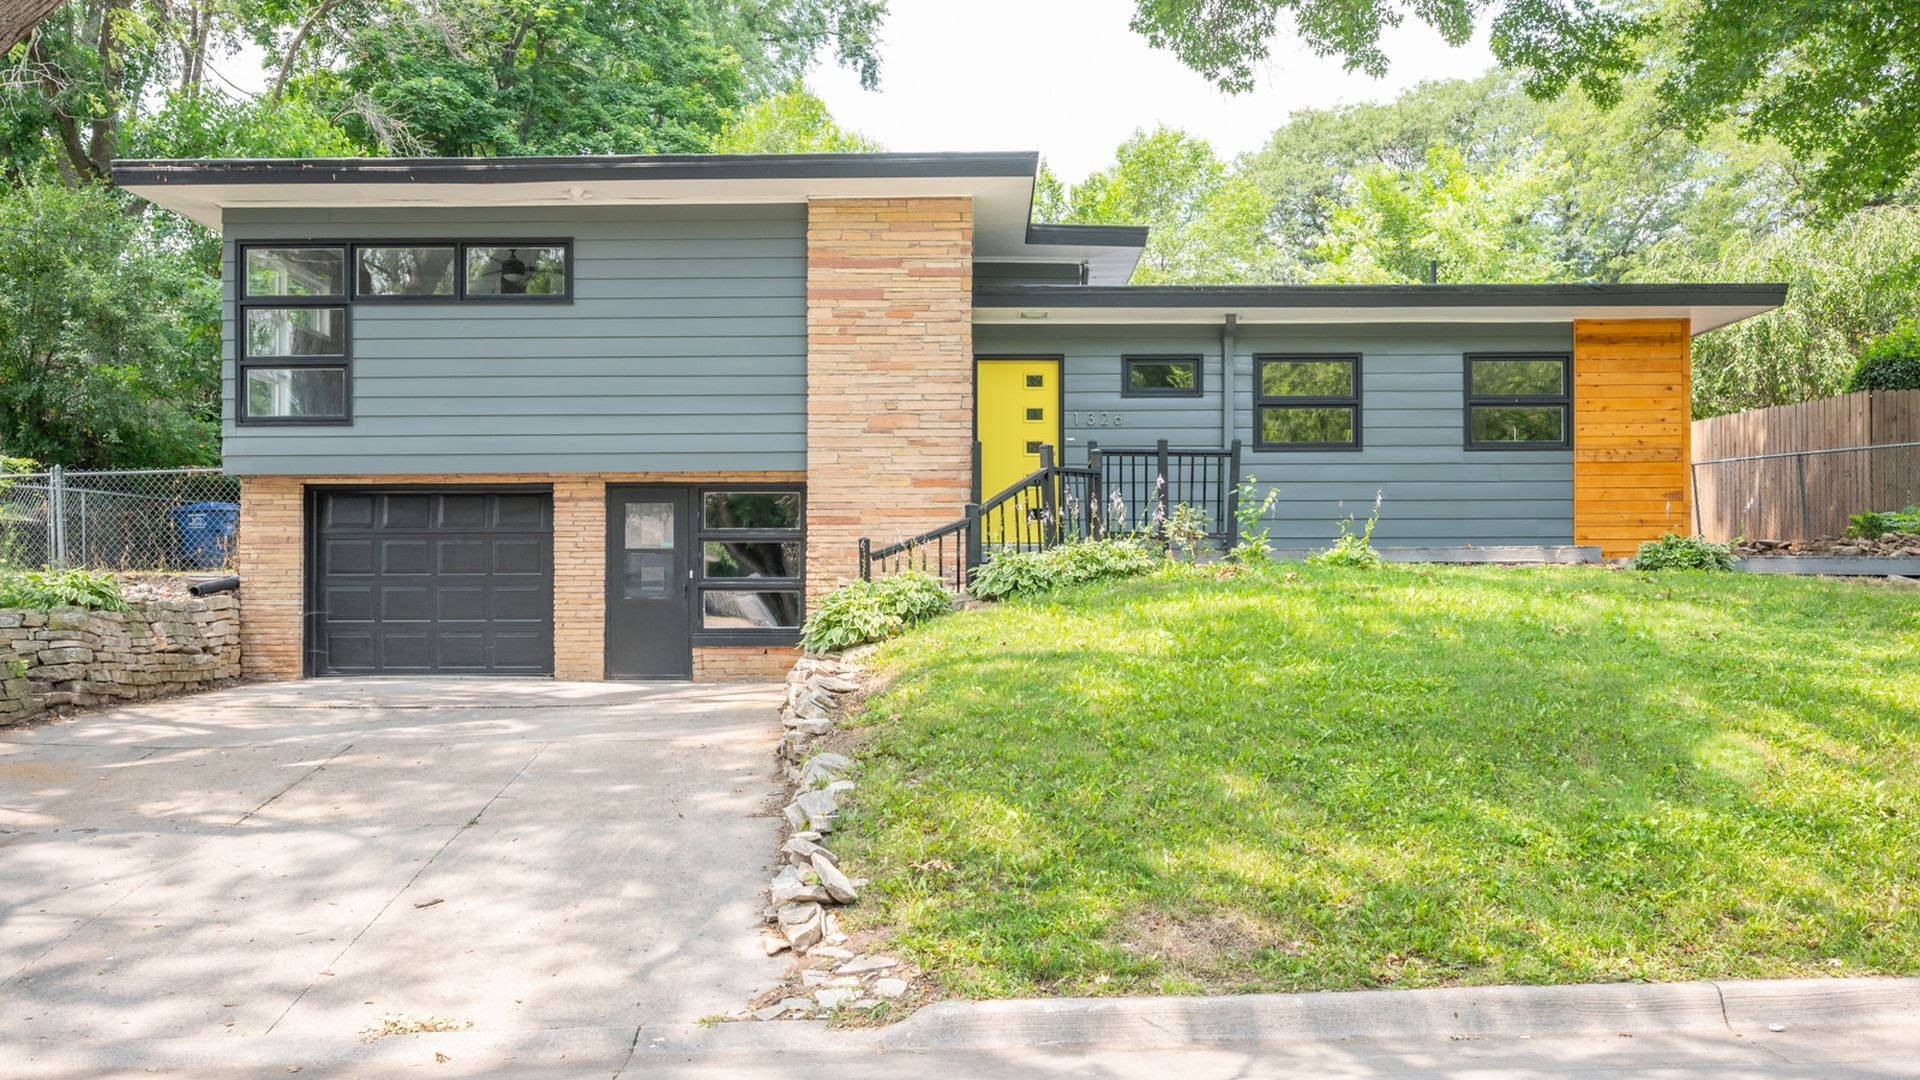 A mid-modern split-level home for sale is Des Moines with a yellow front door.